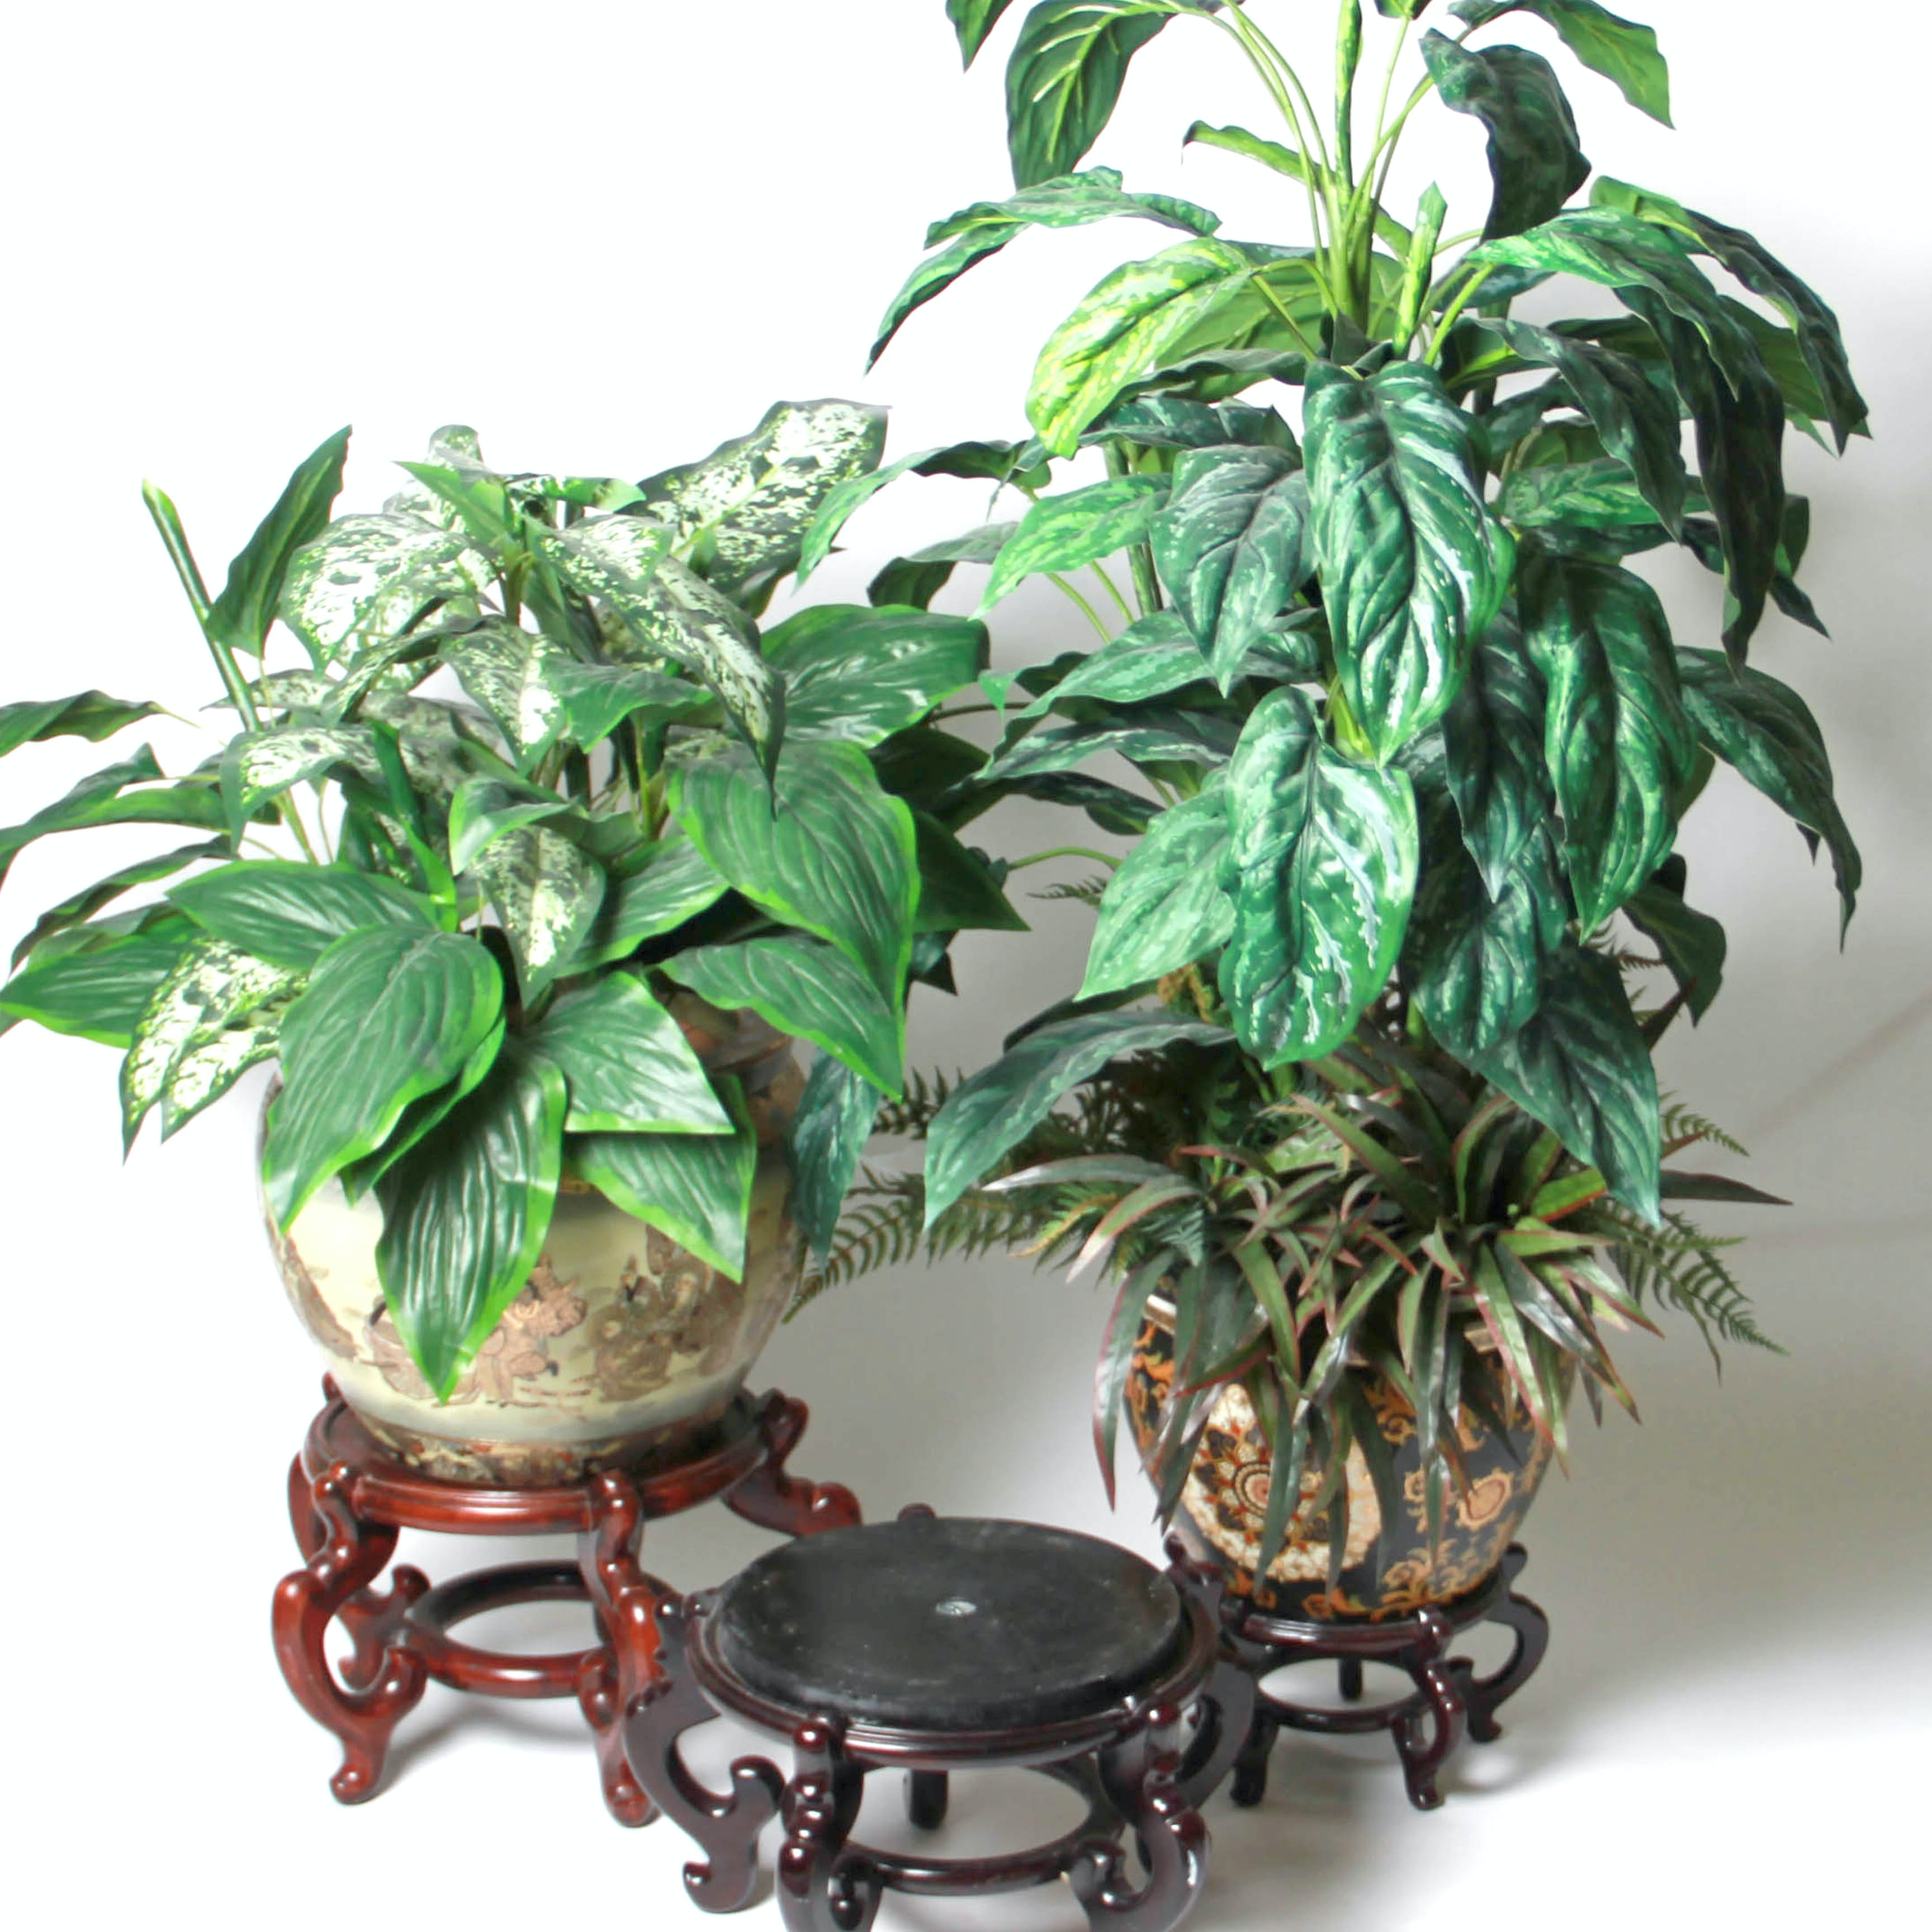 Faux Plants With Decorative Pots and Wooden Stands